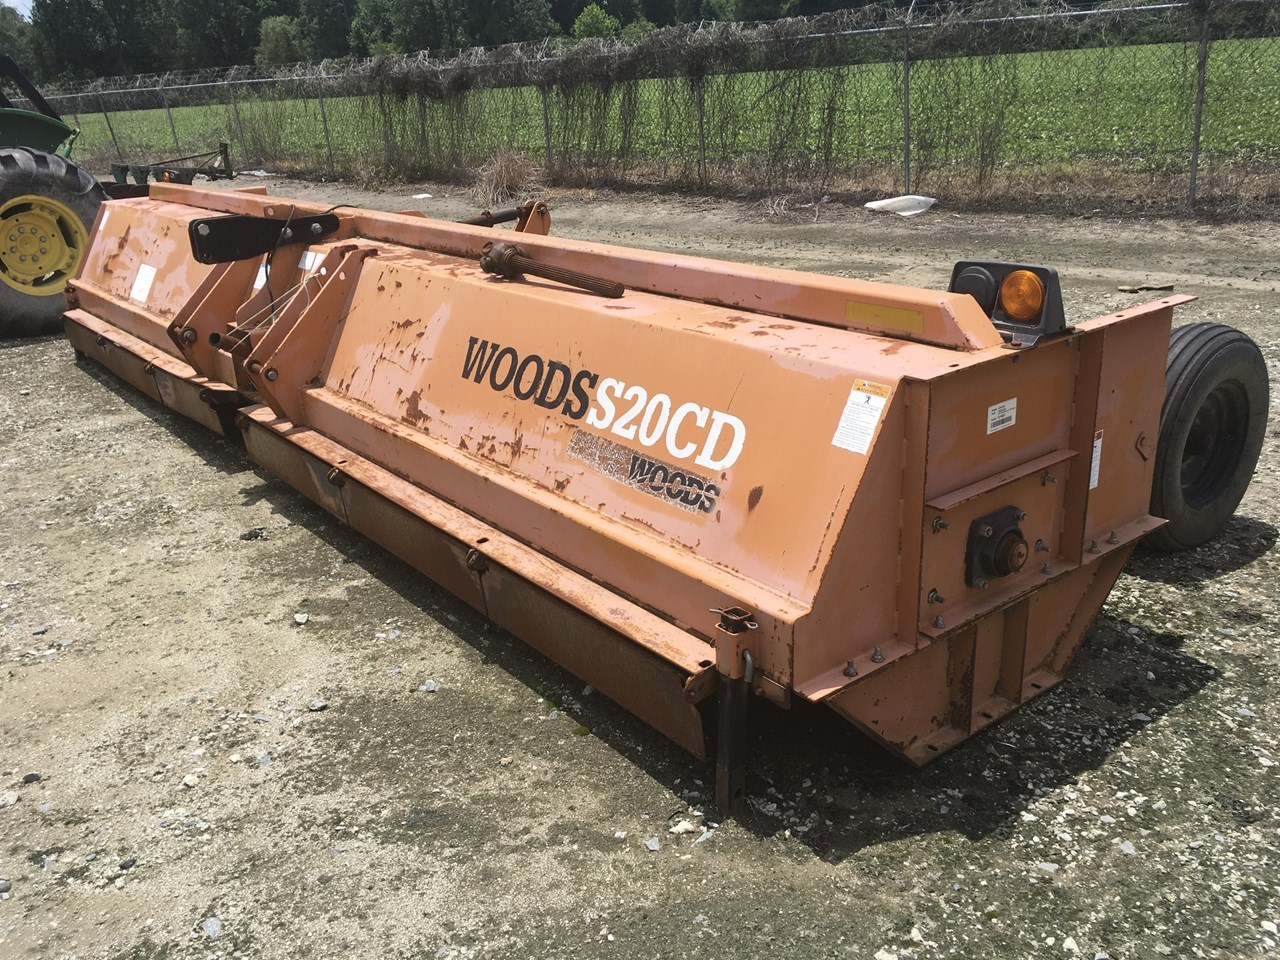 Woods S20CDHD Cutter For Sale